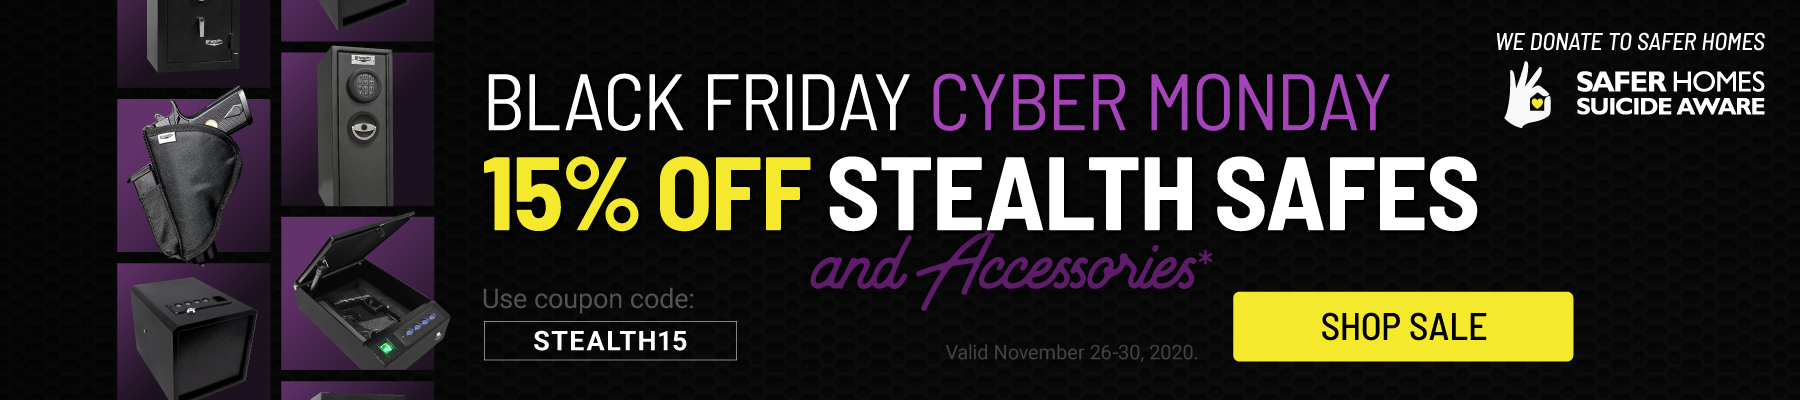 Stealth Black Friday Sale - 15% off Select Stealth Products